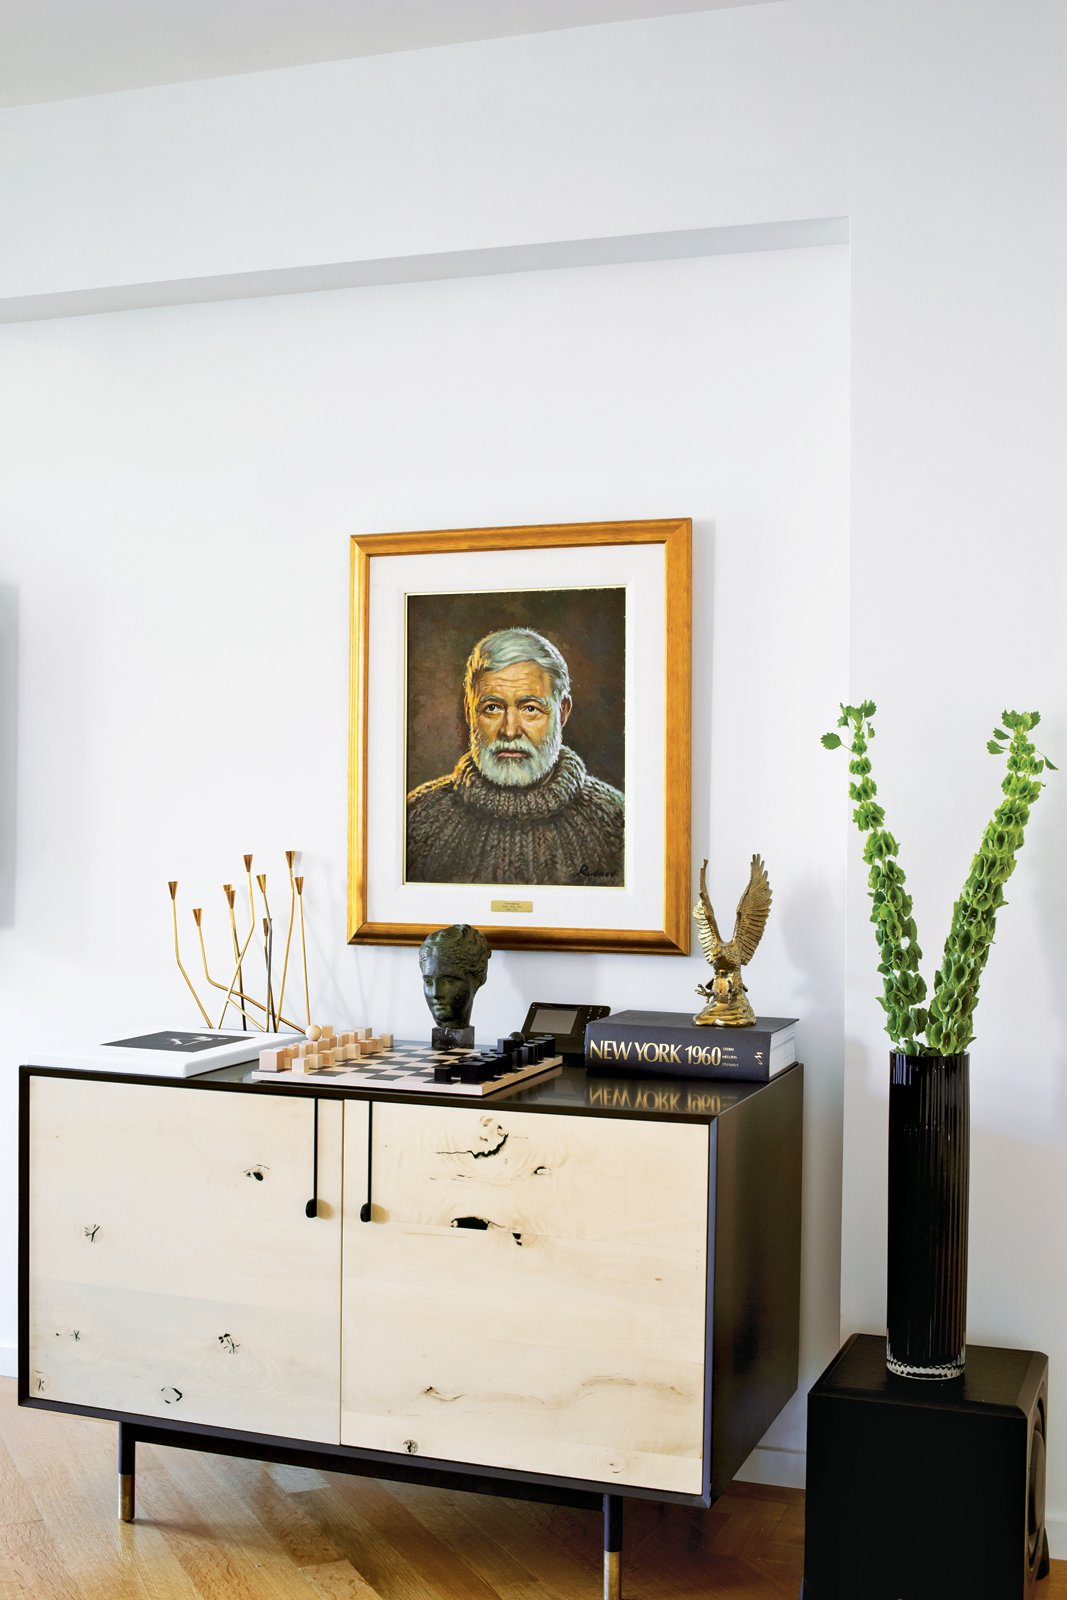 In the living room, a Lake credenza by BDDW is topped with a Bauhaus chess set and a portrait of Ernest Hemingway by the artist Yuriy Rudnev.